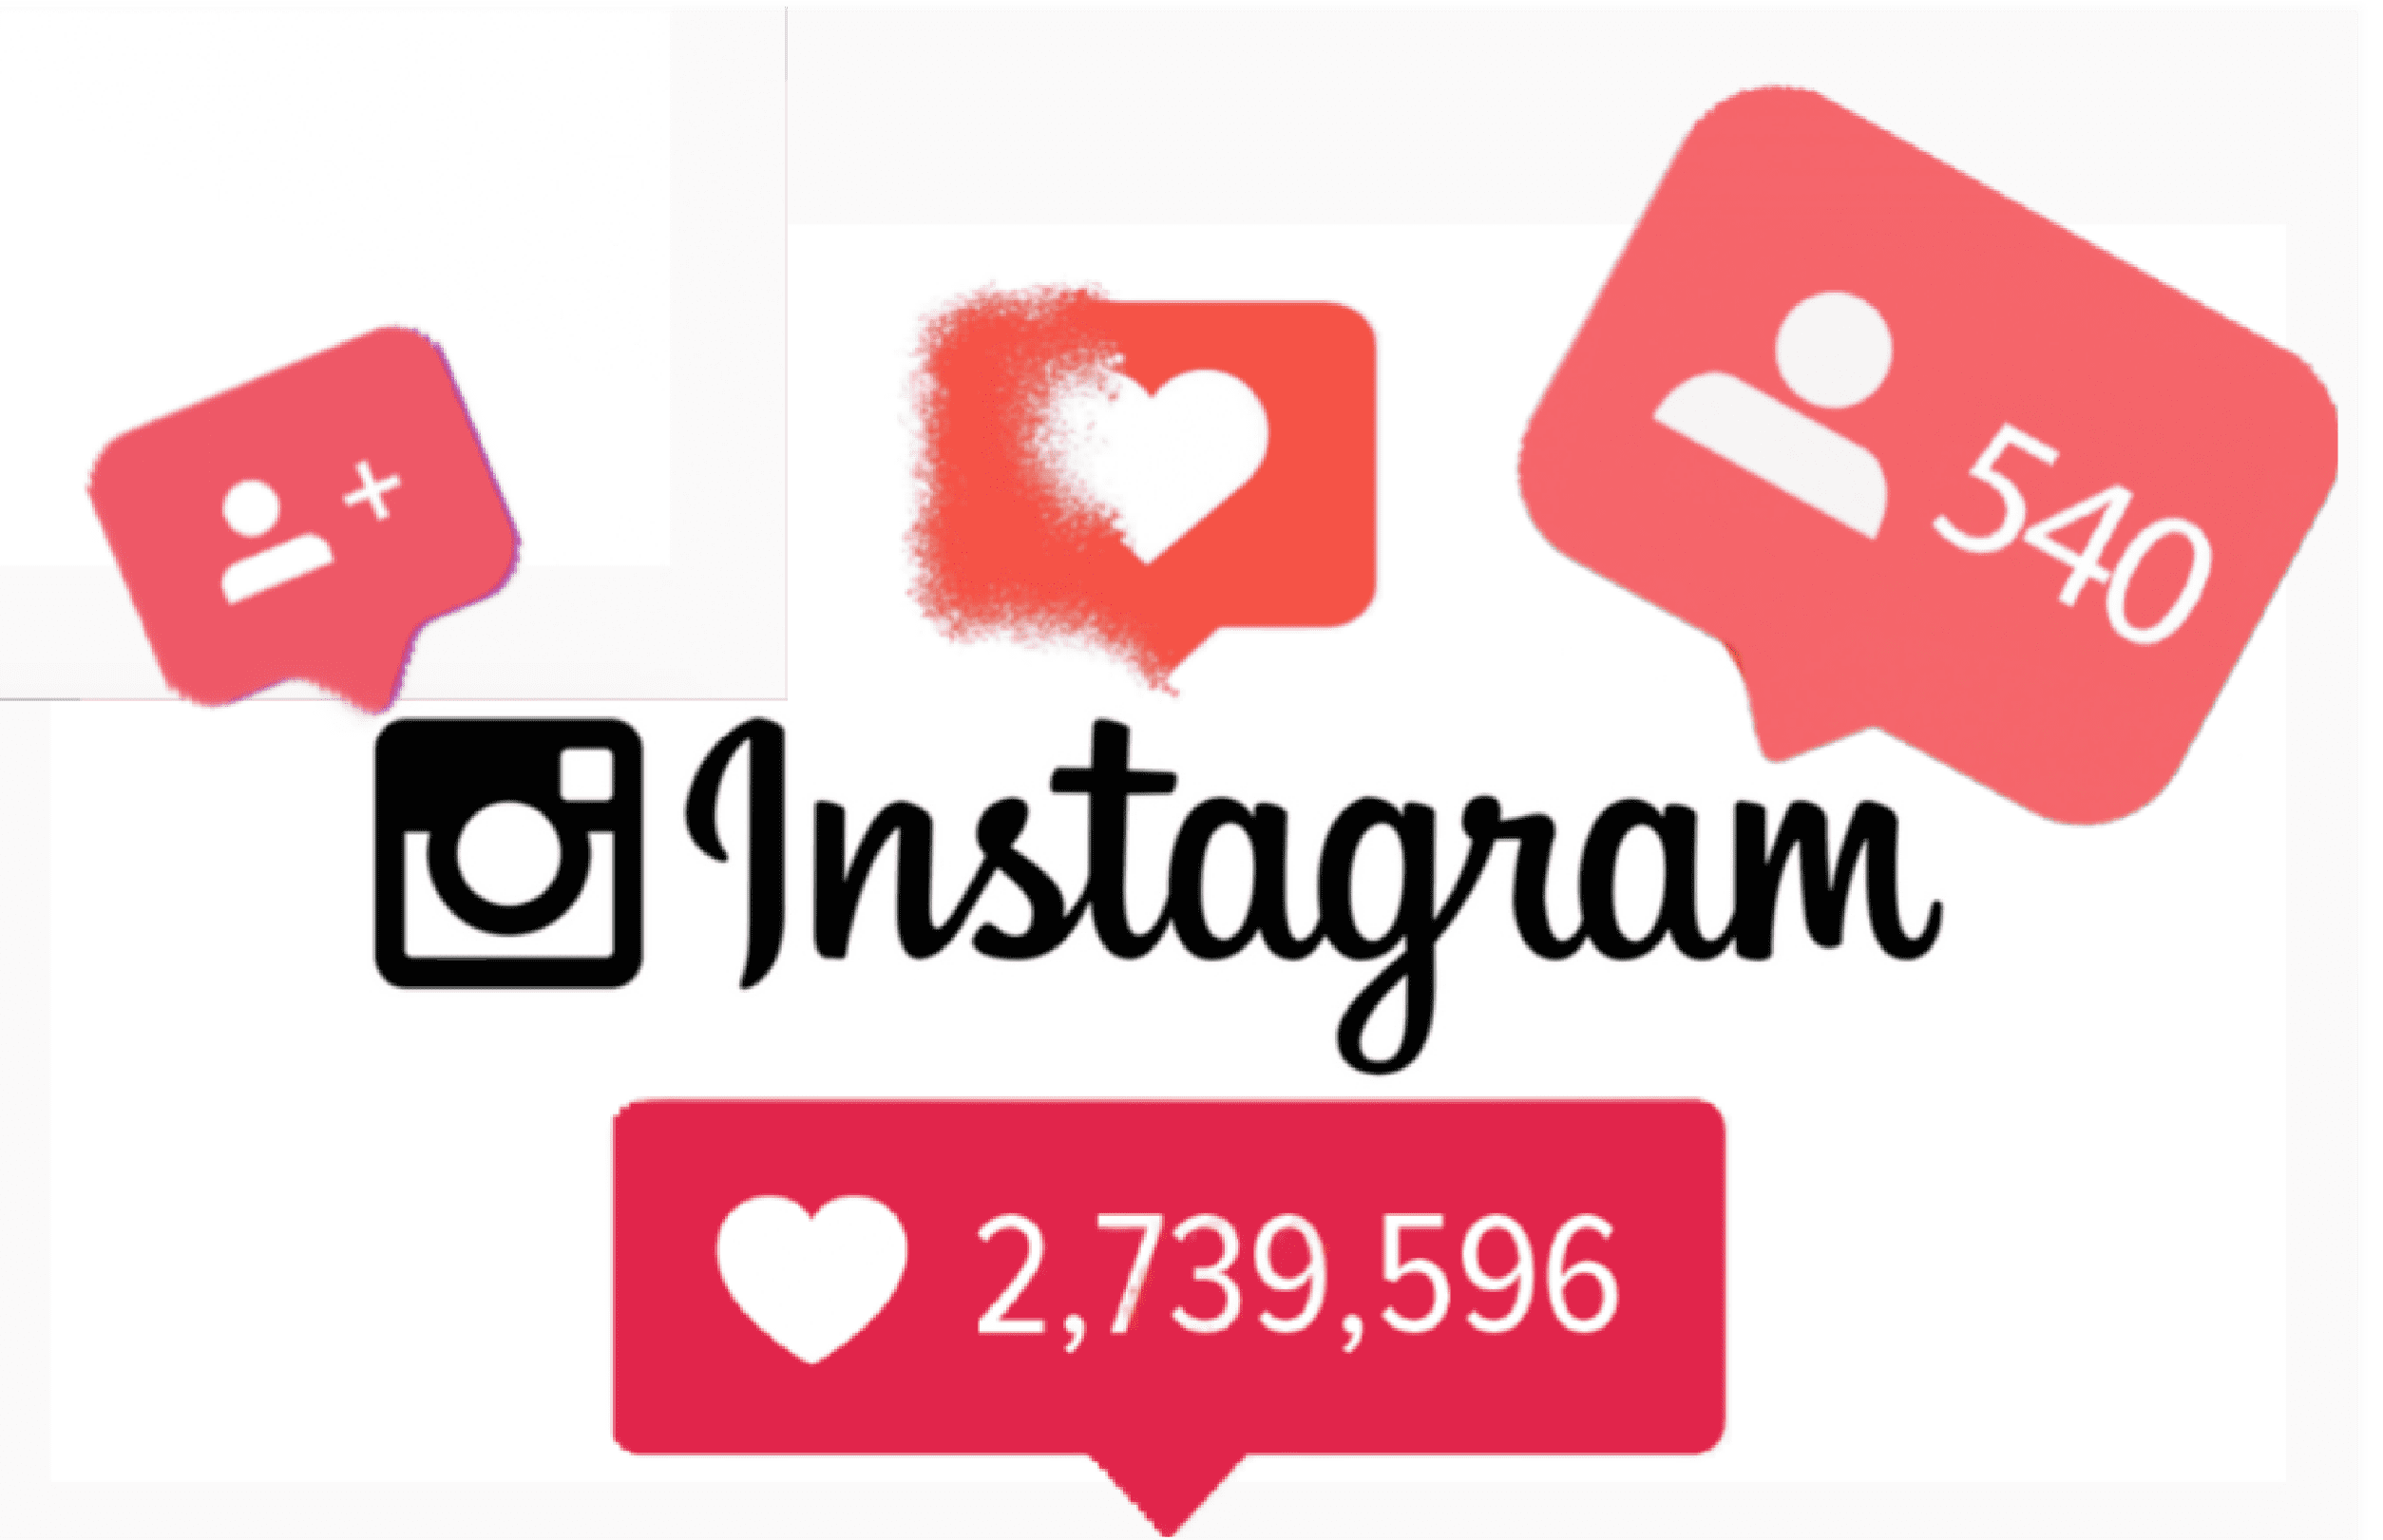 The opportunity to Buy Instagram followers (comprar seguidores de Instagram) You will only have to subscribe to some of the famous website plans.